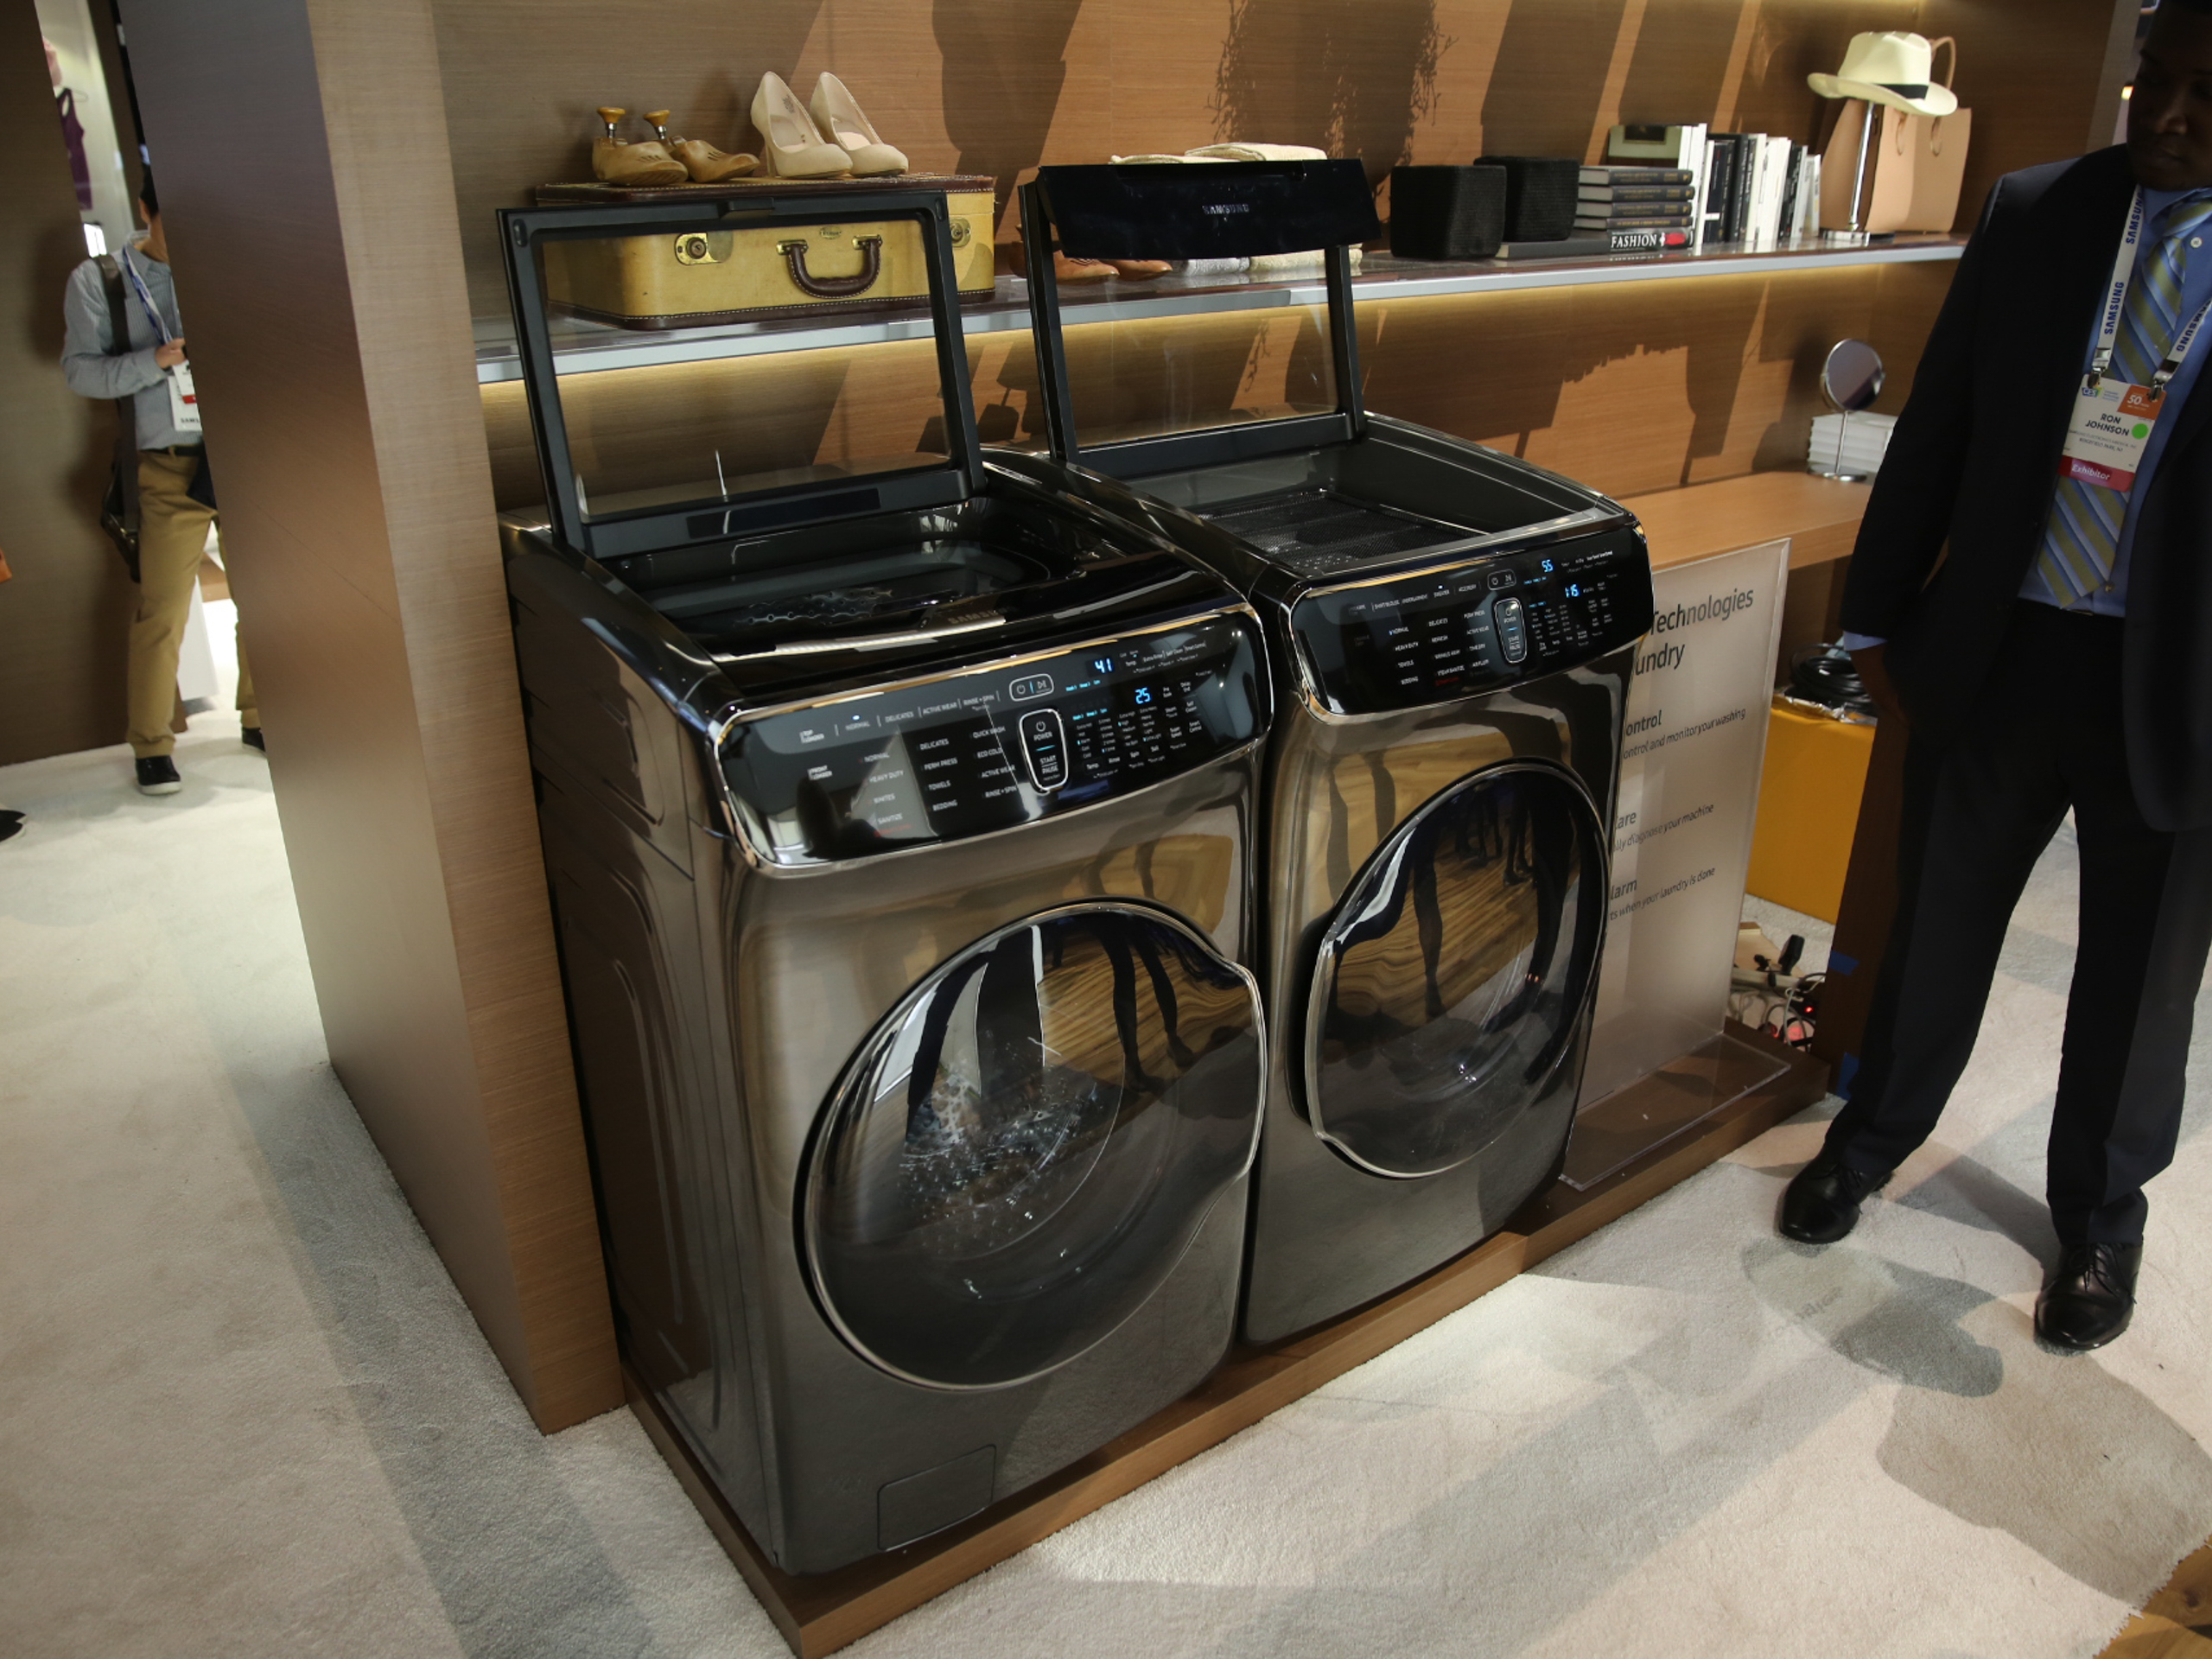 samsung-flex-washer-and-dryer-product-photos-1.jpg